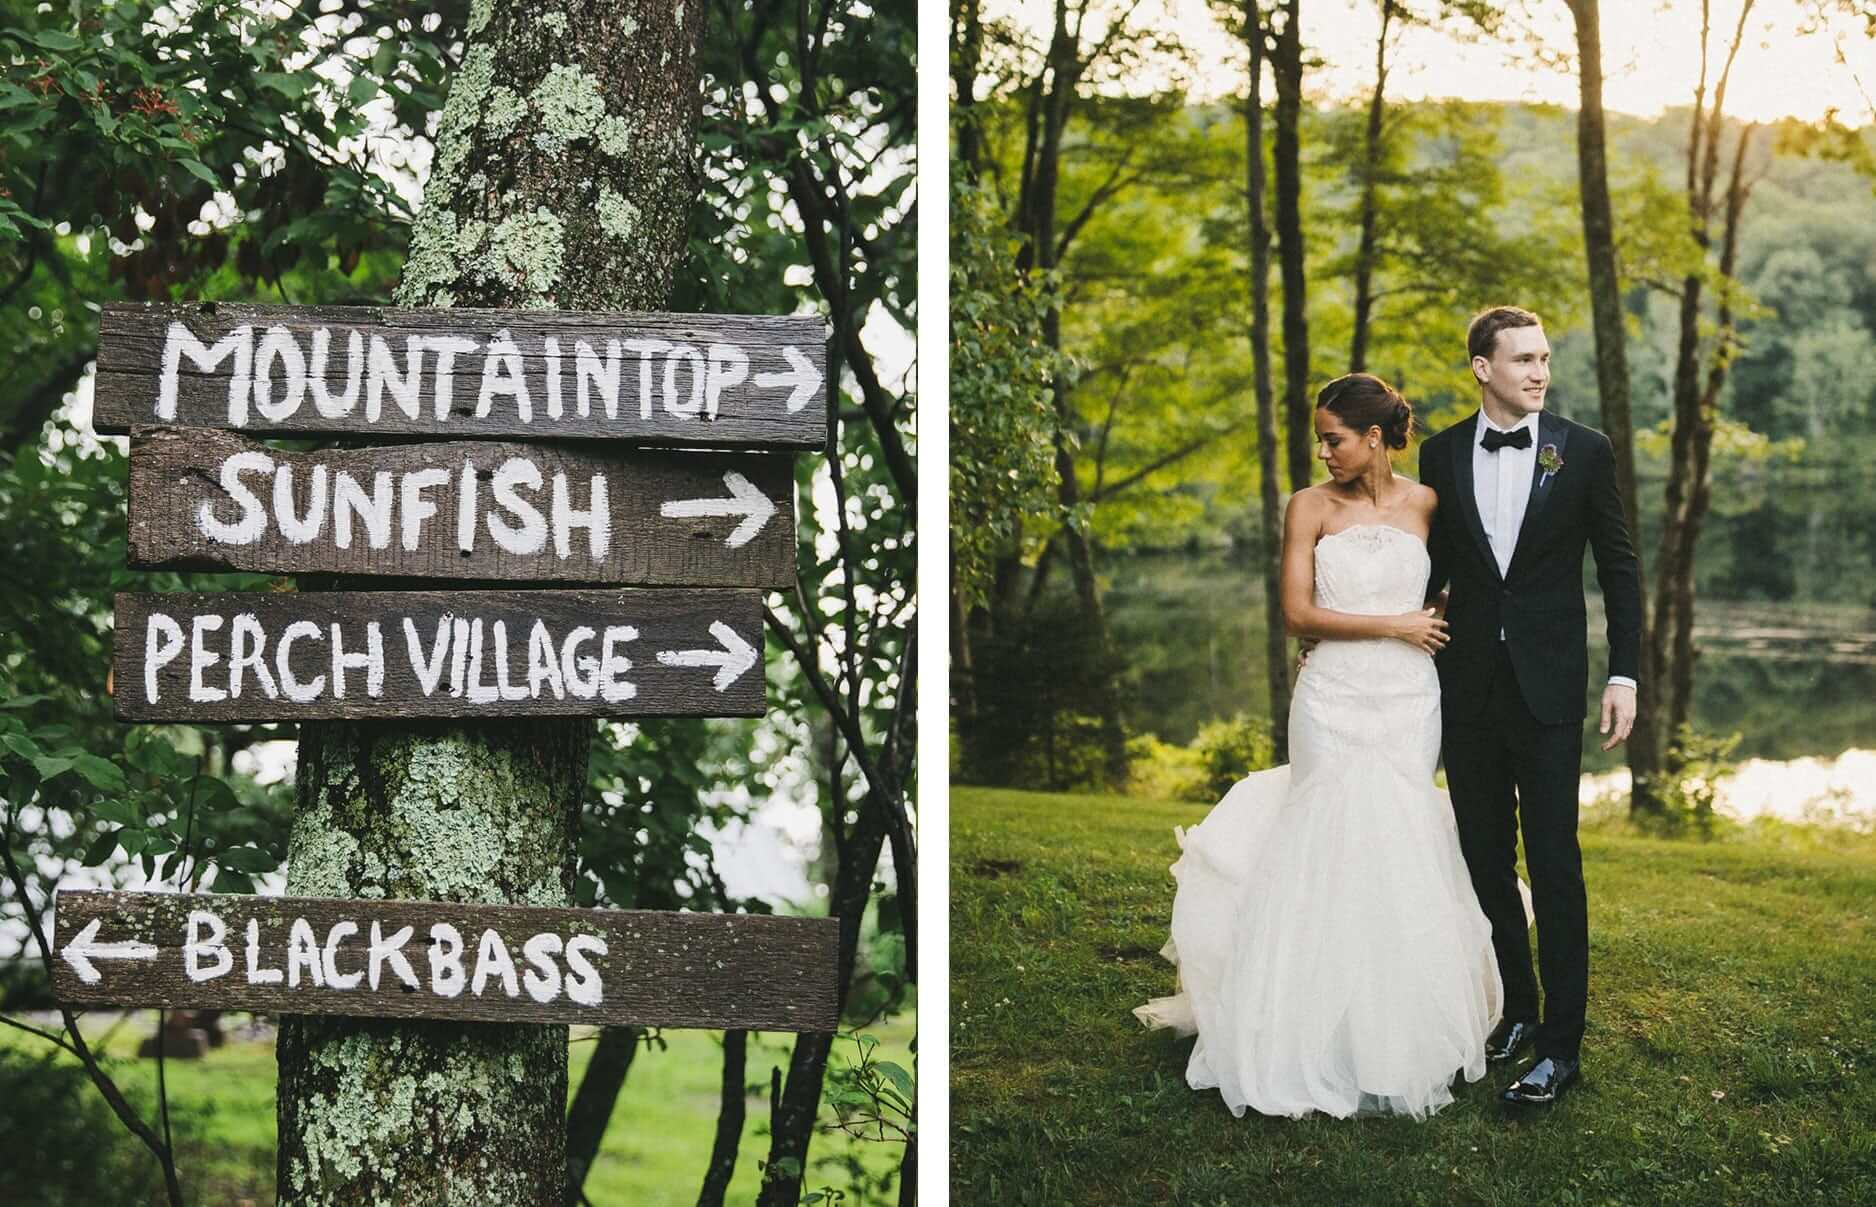 Wedding Sign, Bride & Groom